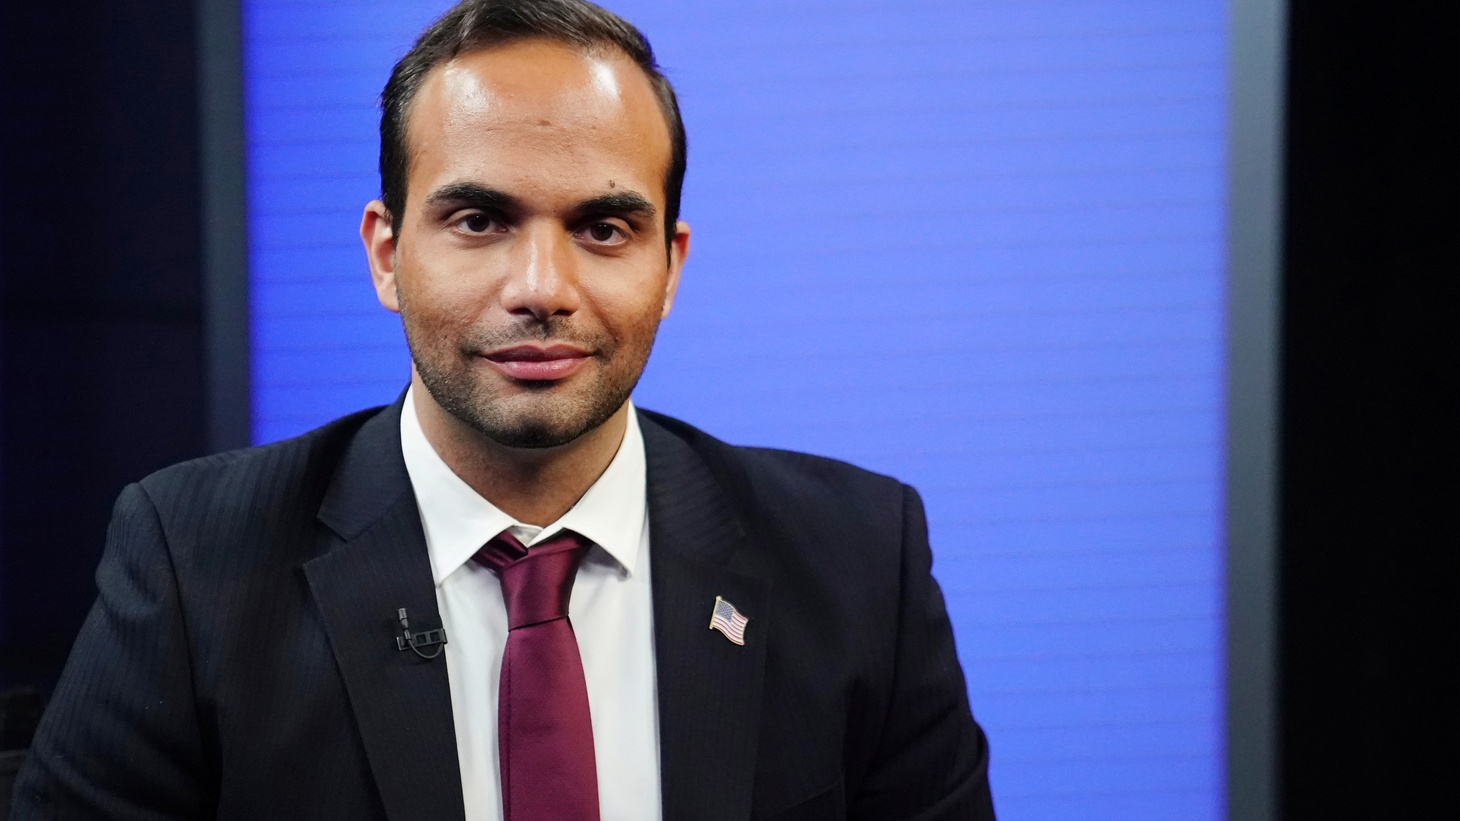 George Papadopoulos poses for a photo before a TV interview in New York, New York, U.S., March 26, 2019.